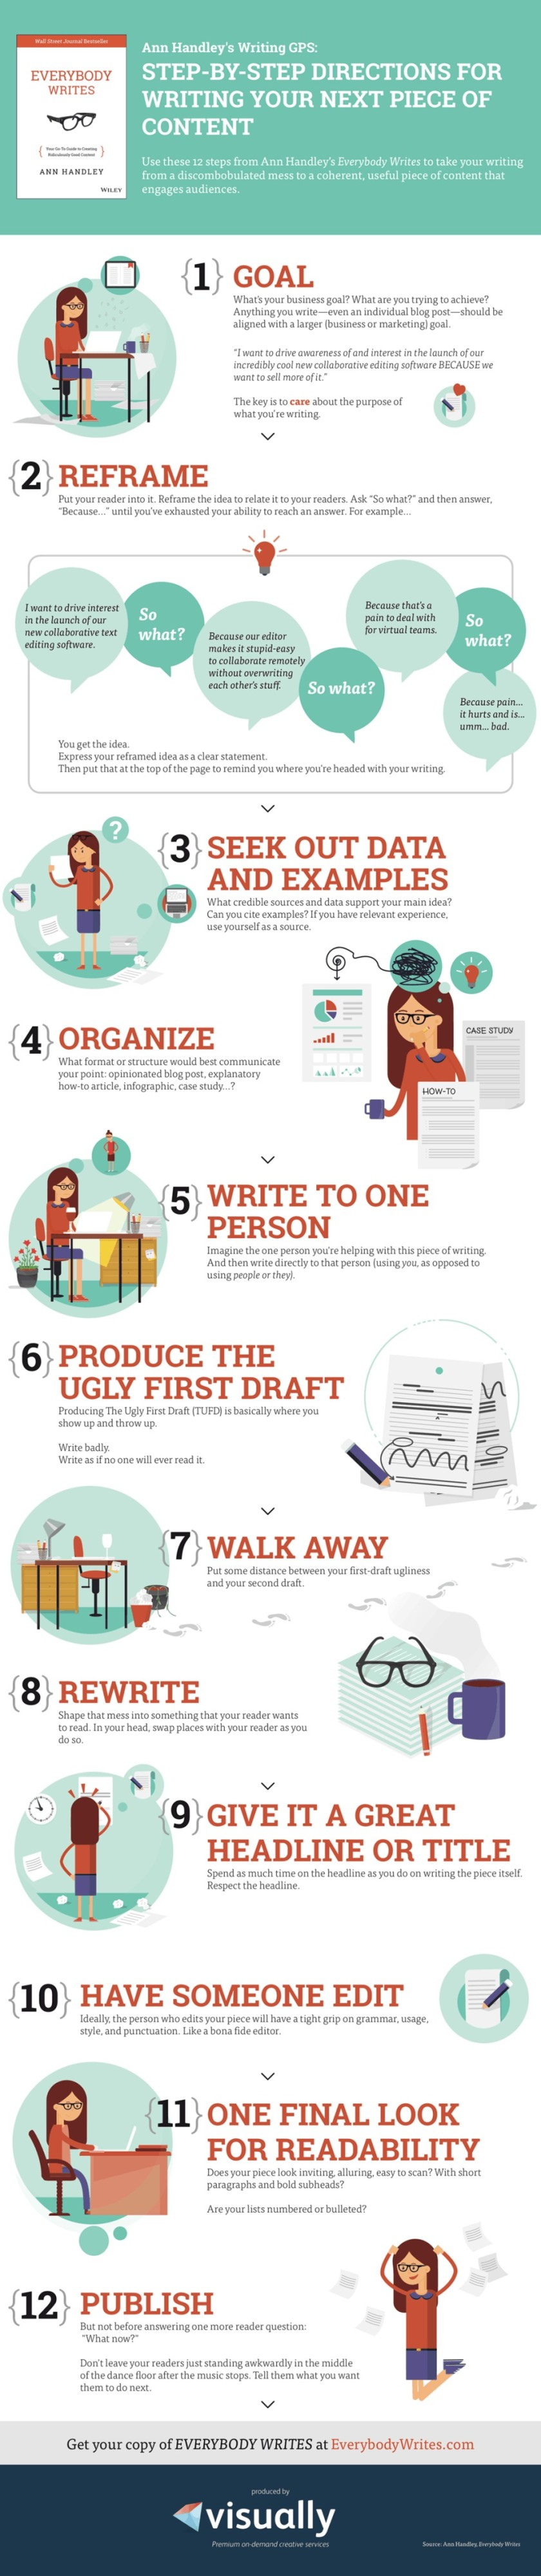 Ann Handley's step-by-step directions to better writing #infographic